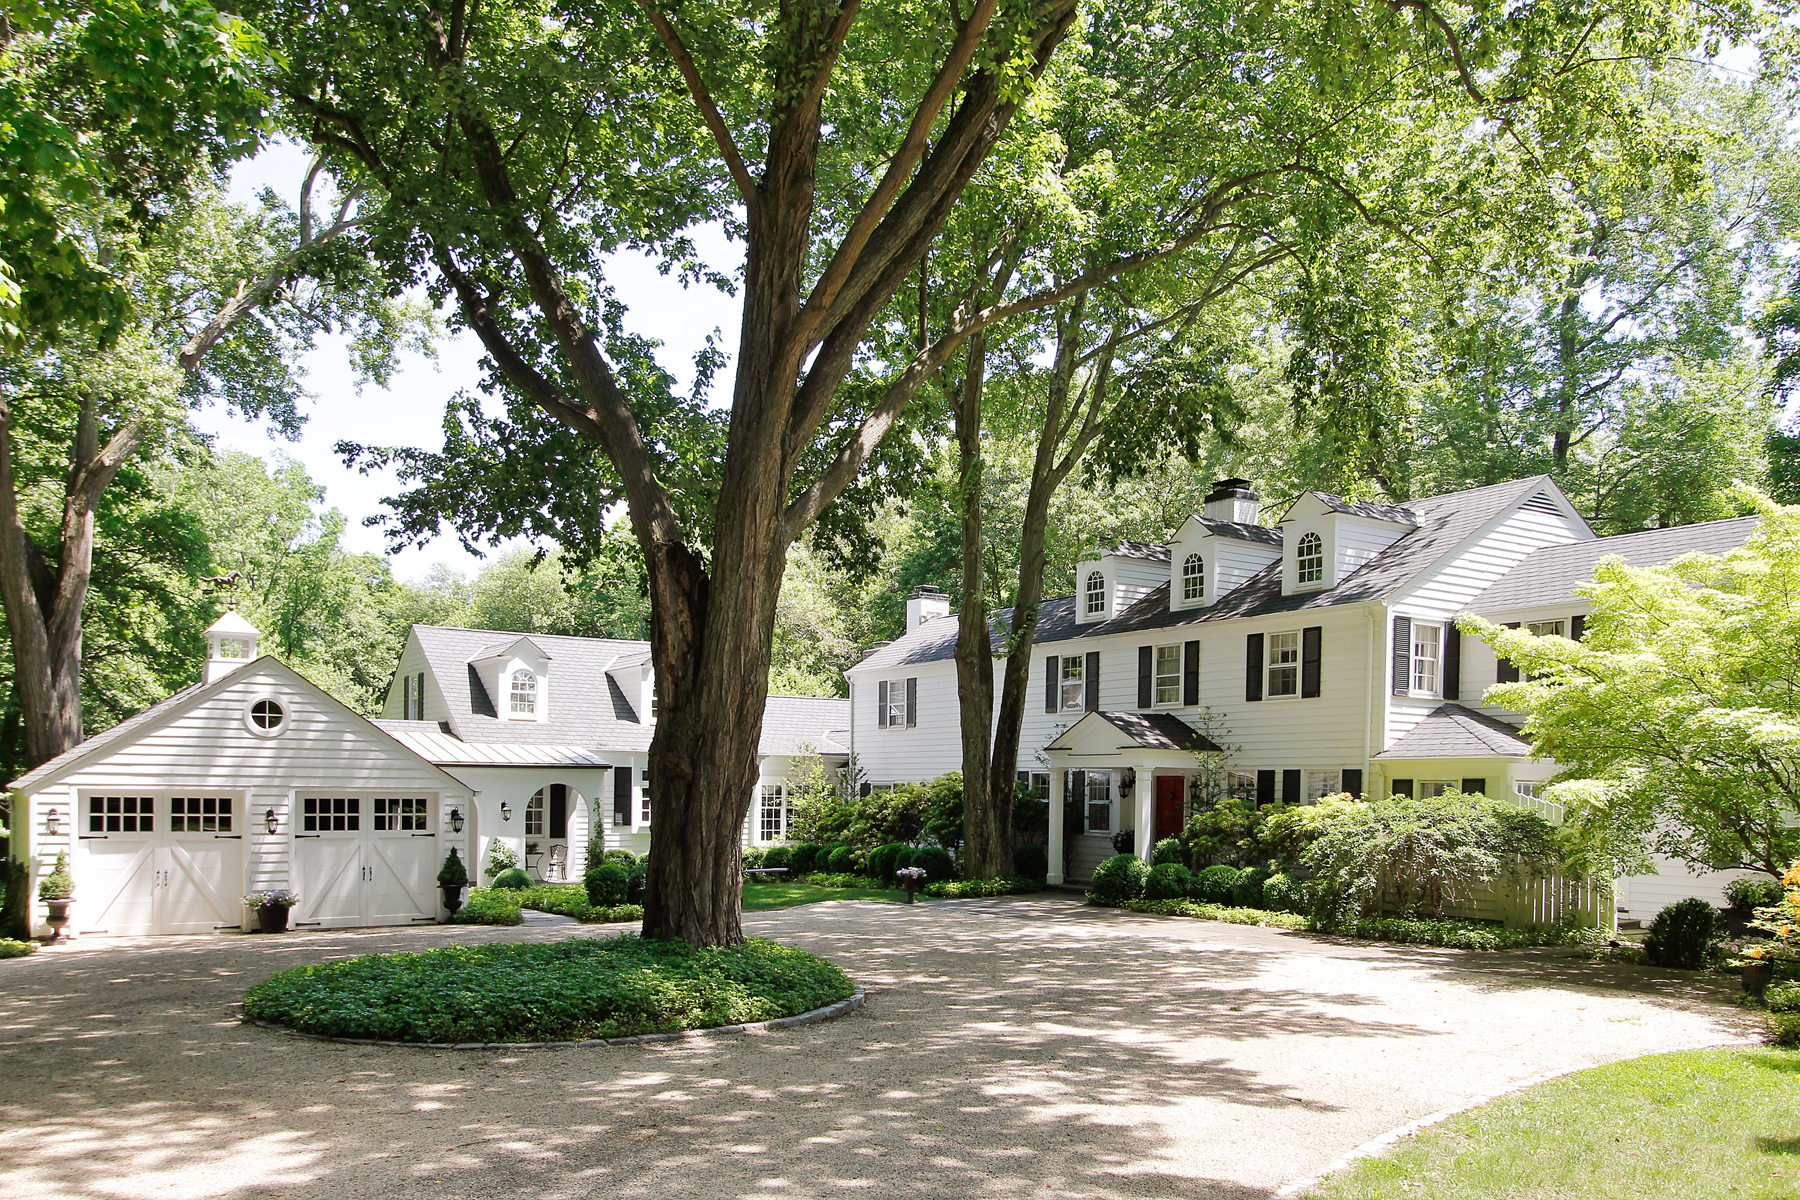 Single Family Home for Sale at Classic Bedford 98 Succabone Road Bedford Hills, New York 10507 United States